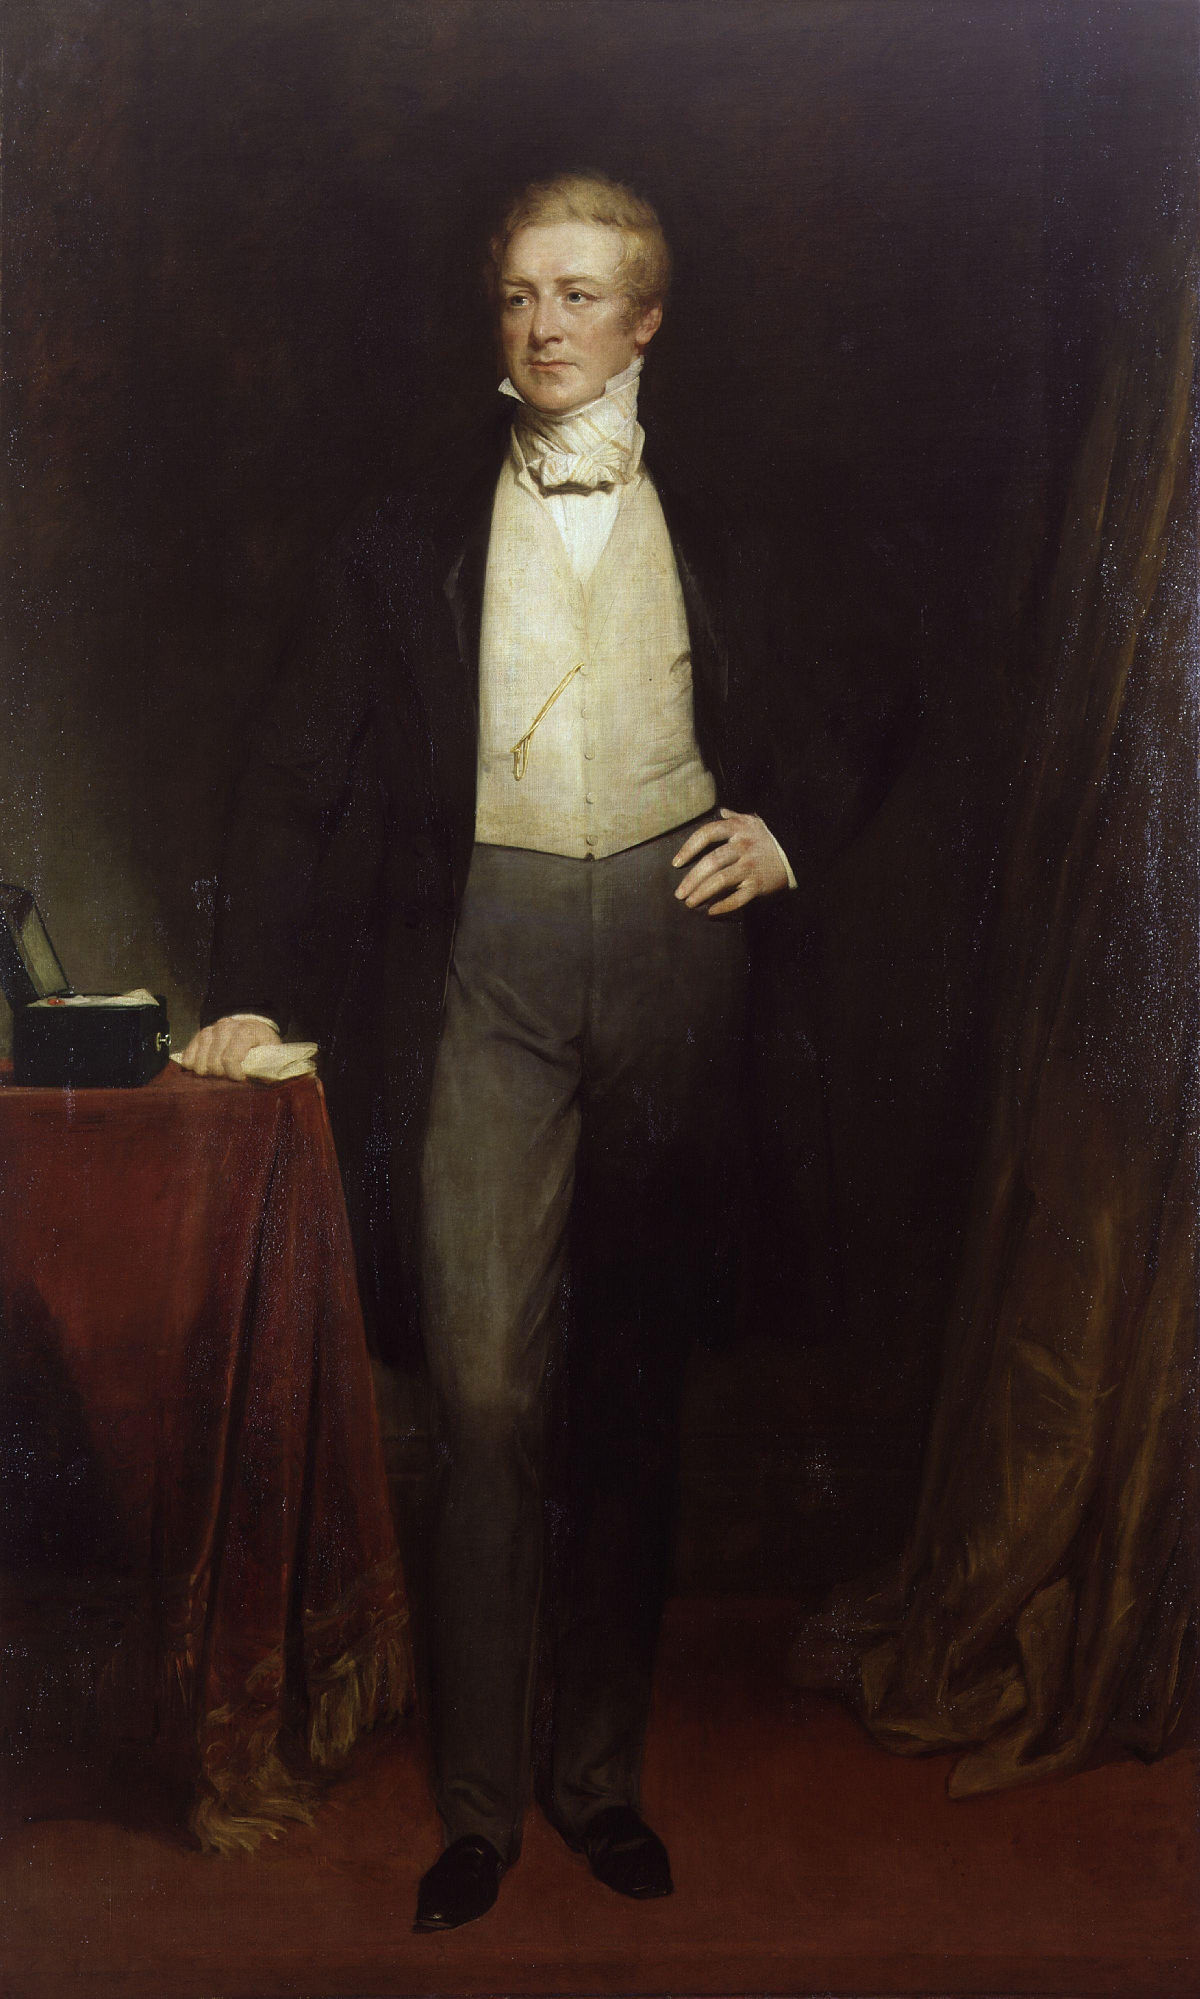 robbert peel Robert owen was born in newtown, montgomeryshire (wales) on may 14, 1771, the sixth of seven children his father was a sadler and ironmonger who also served as local postmaster his mother came from one of the prosperous farming families of newtown.